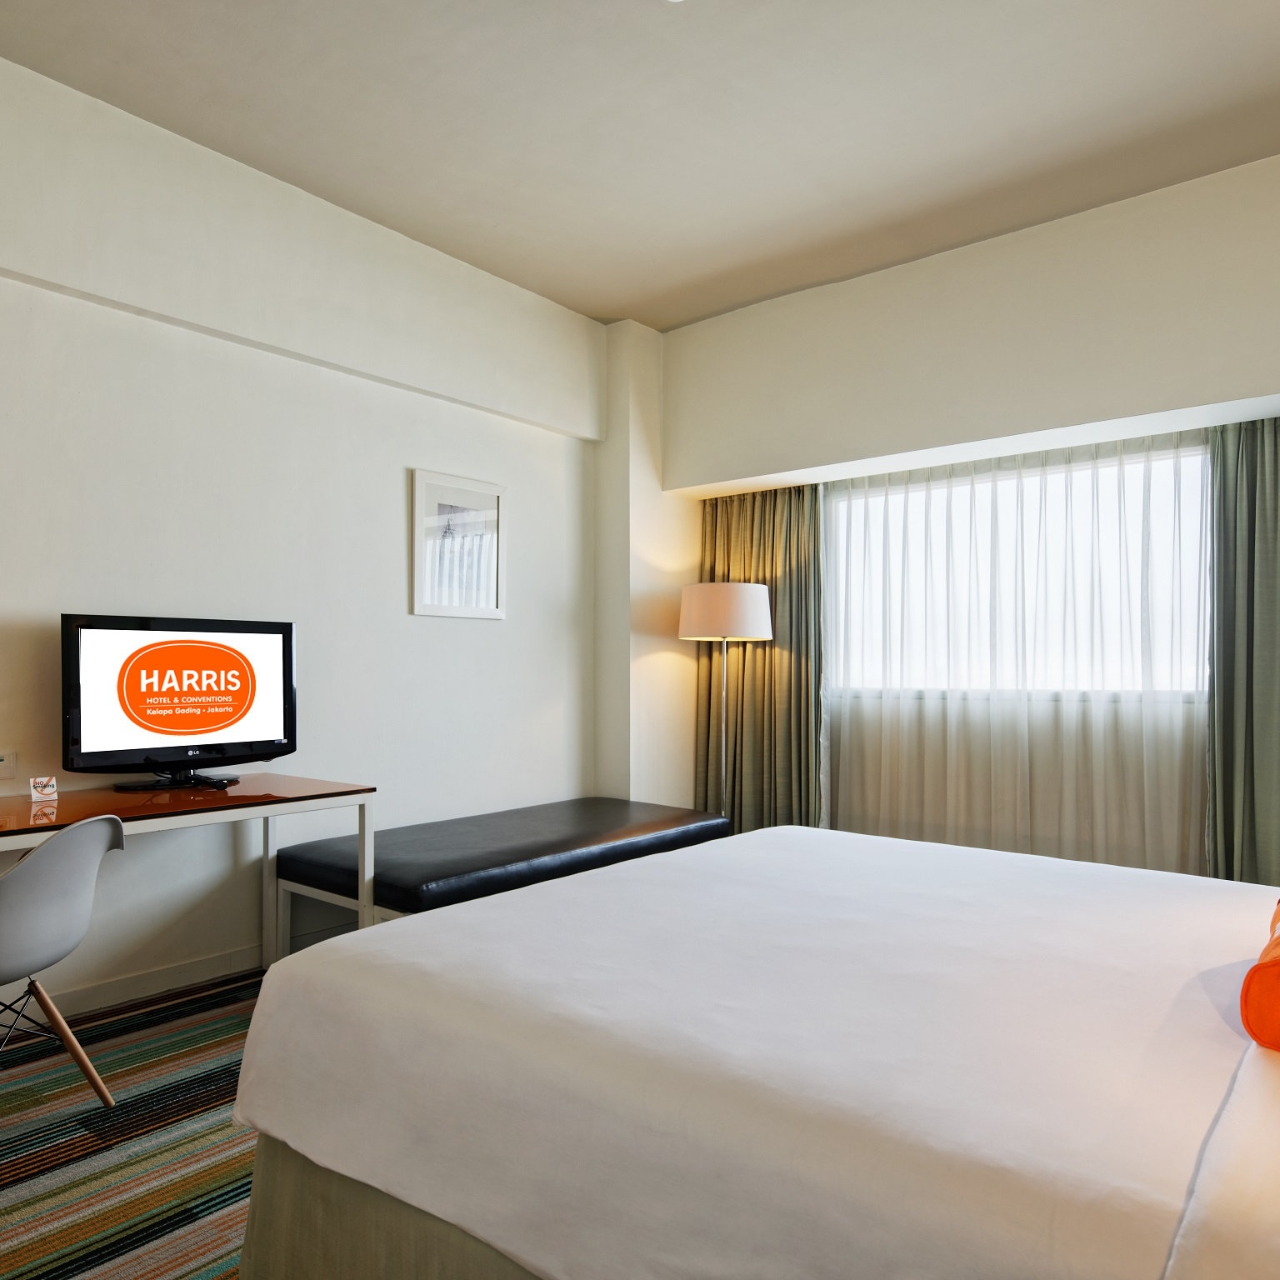 Harris Hotel And Conventions Kelapa Gading 4 Hrs Star Hotel In Jakarta